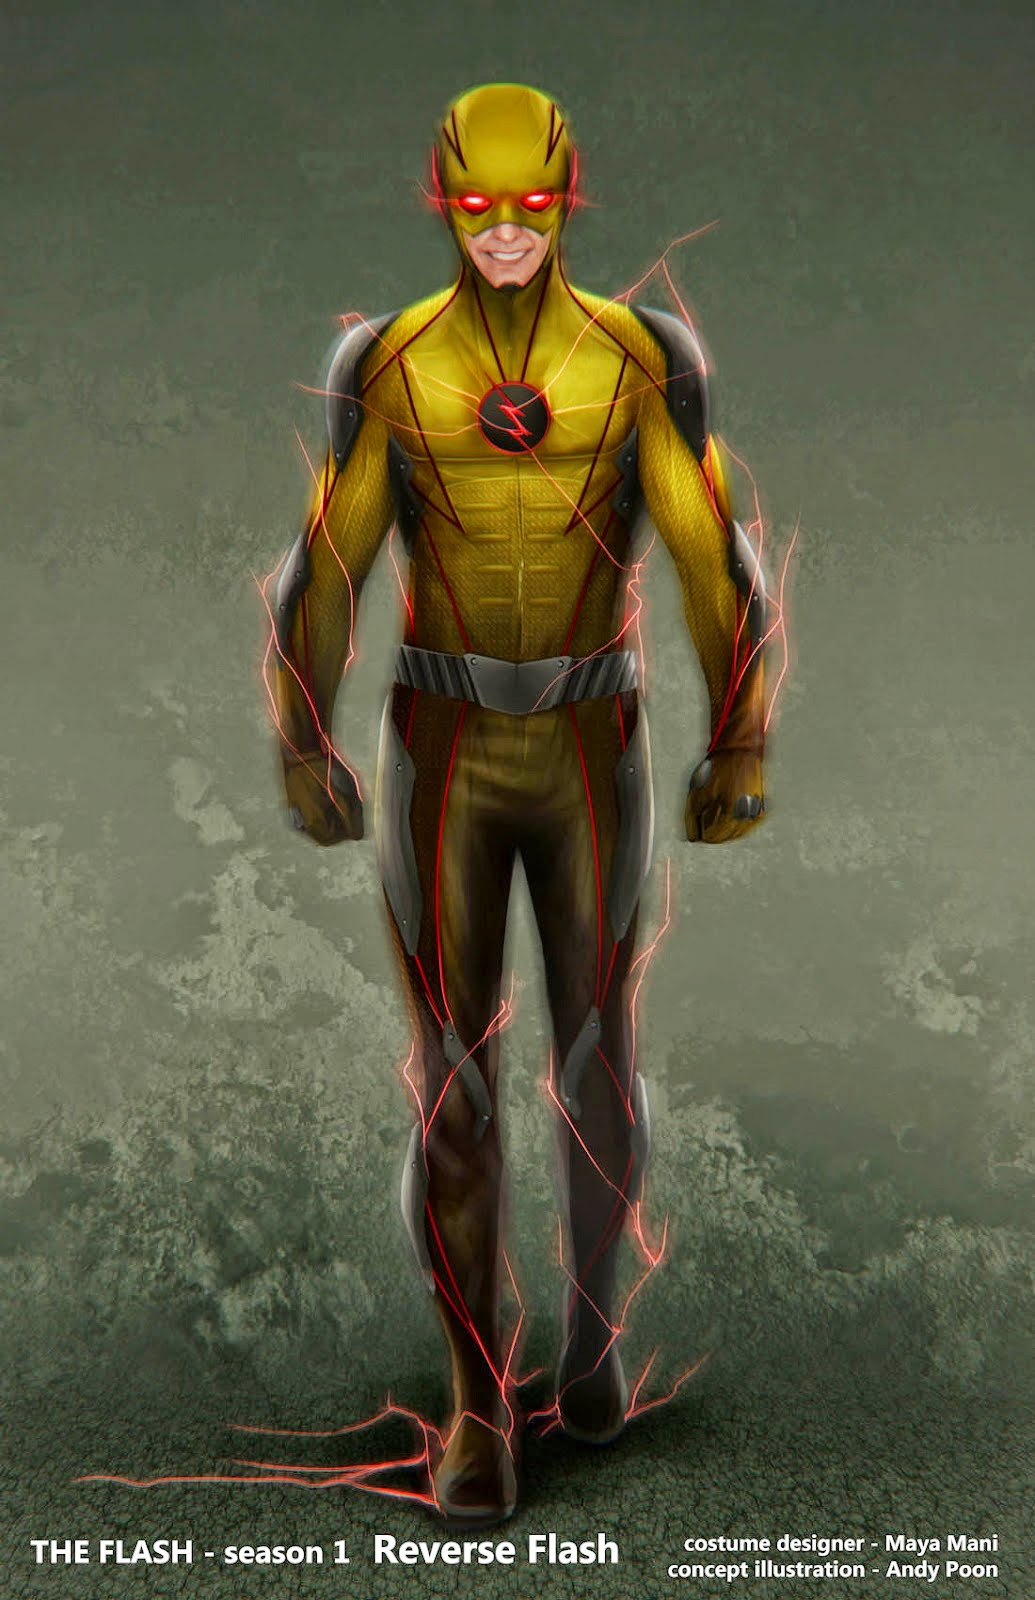 Reverse Flash And I Knew That It Is Harrison Wells Who In The Suit But Had No Idea What His True Identity Was Whole Back Story